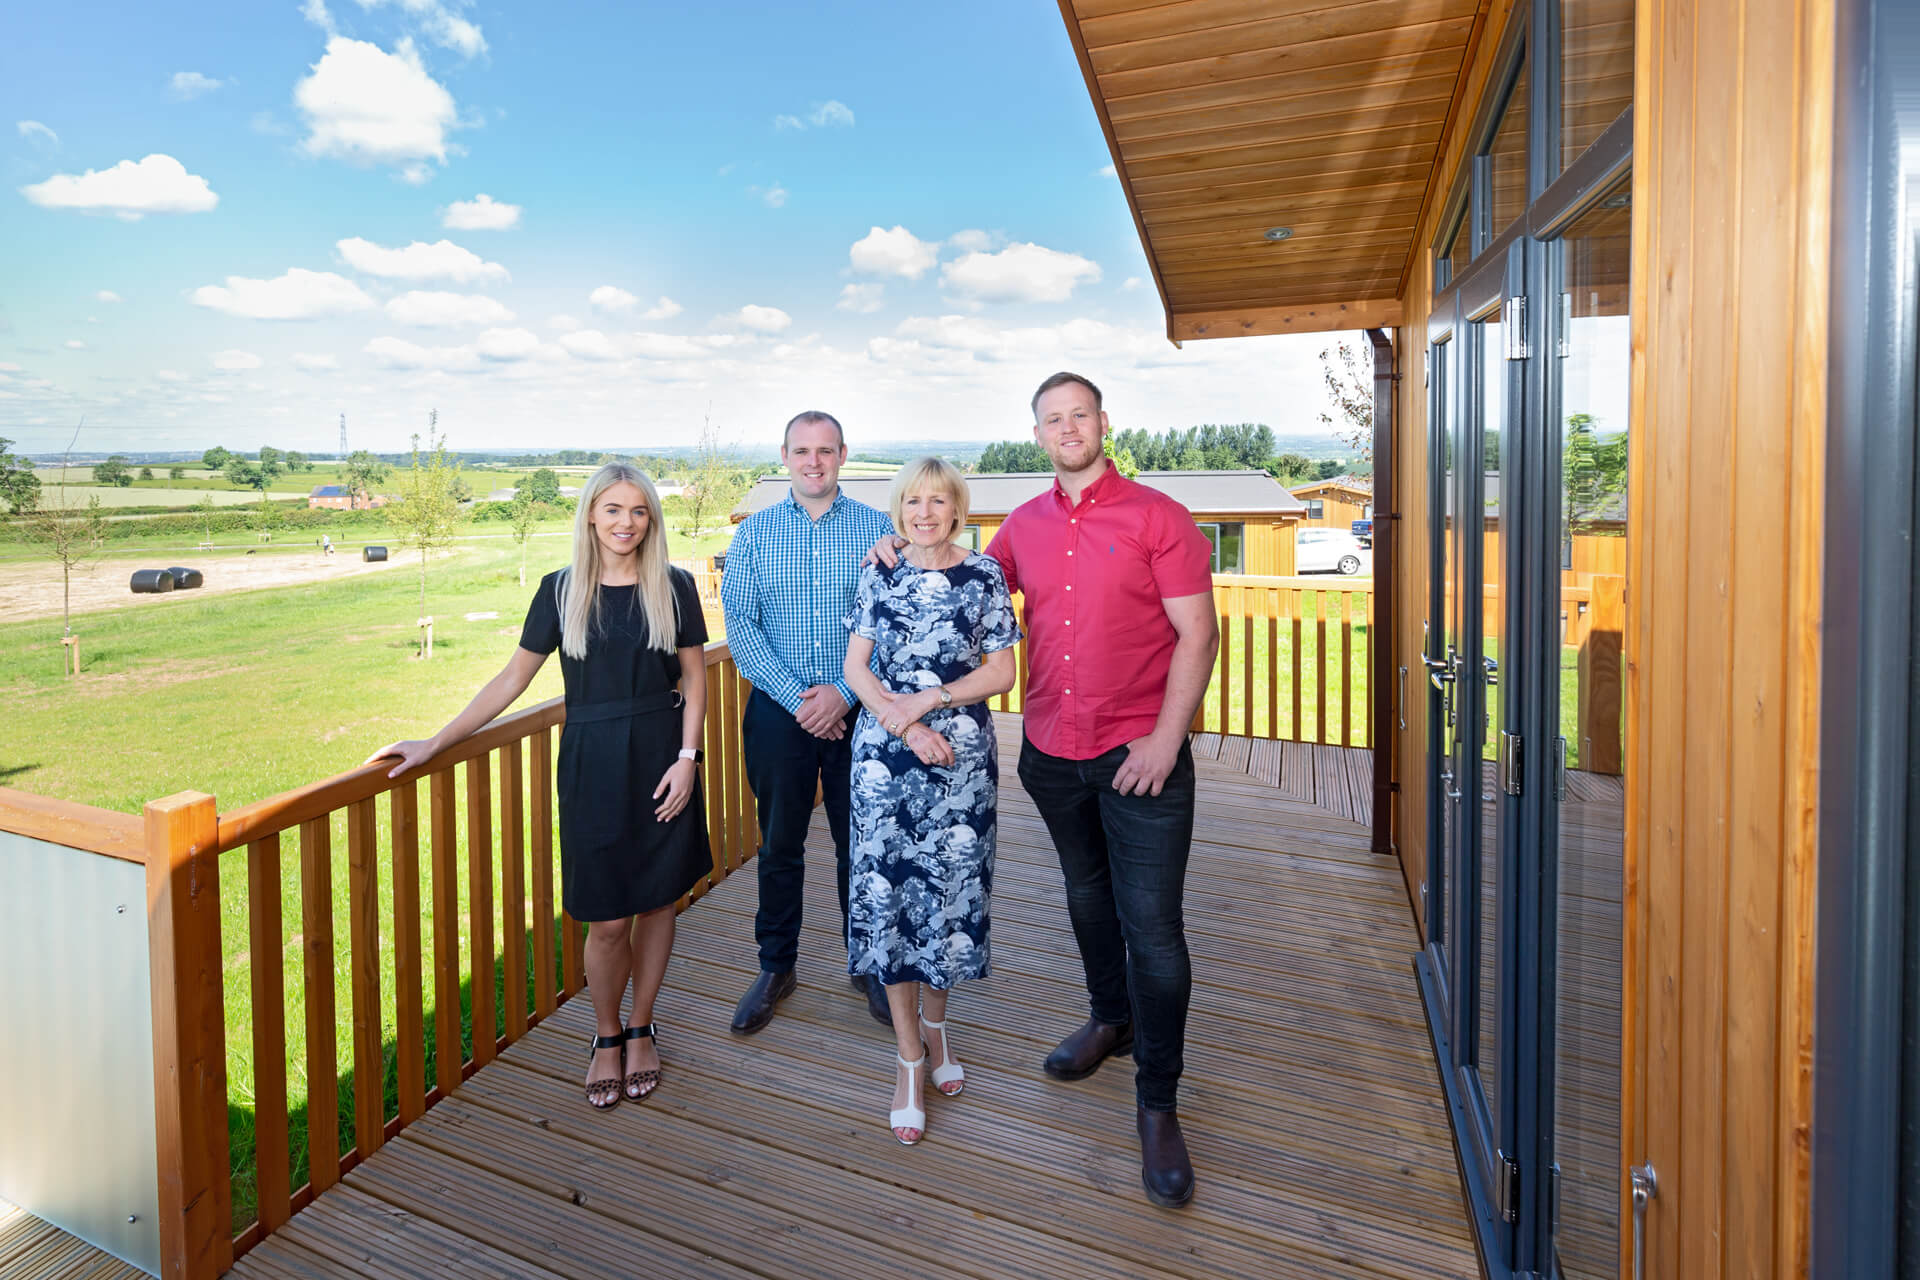 Four members of the Willshee family standing on the deck of one of their holiday lodges at the Knights Lodges of Bretby